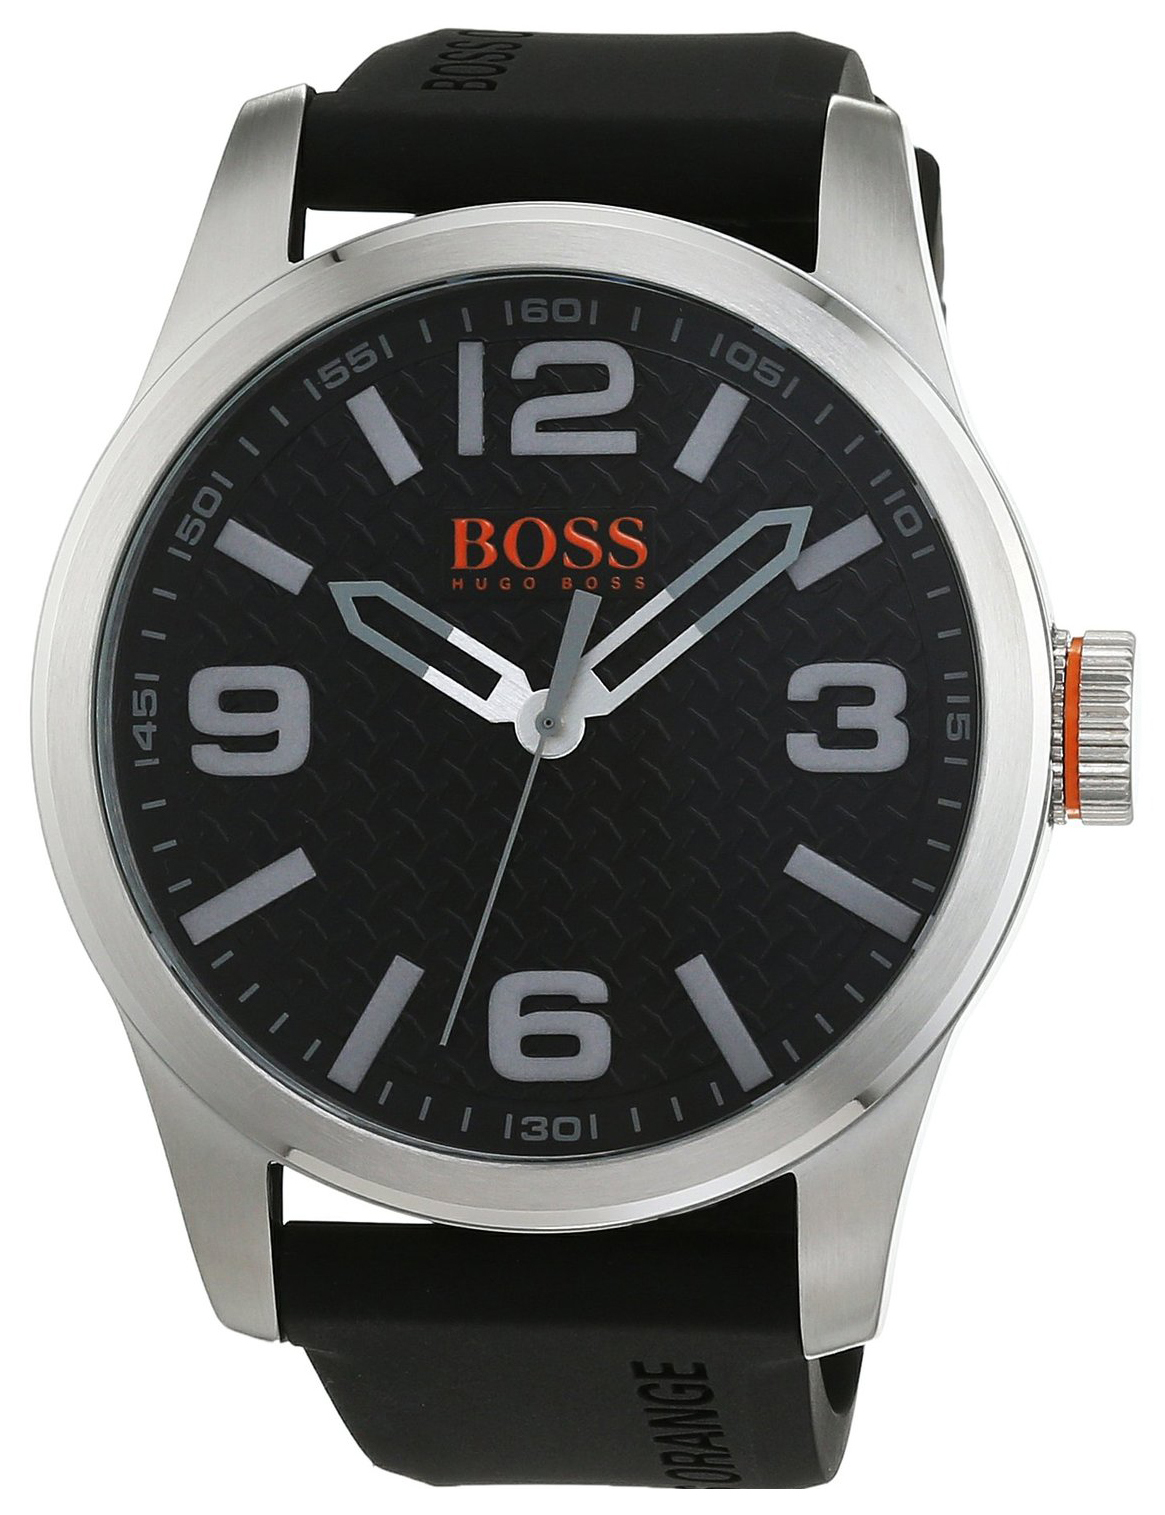 Hugo Boss Paris Herrklocka 1513350 Svart/Gummi Ø47 mm - Hugo Boss